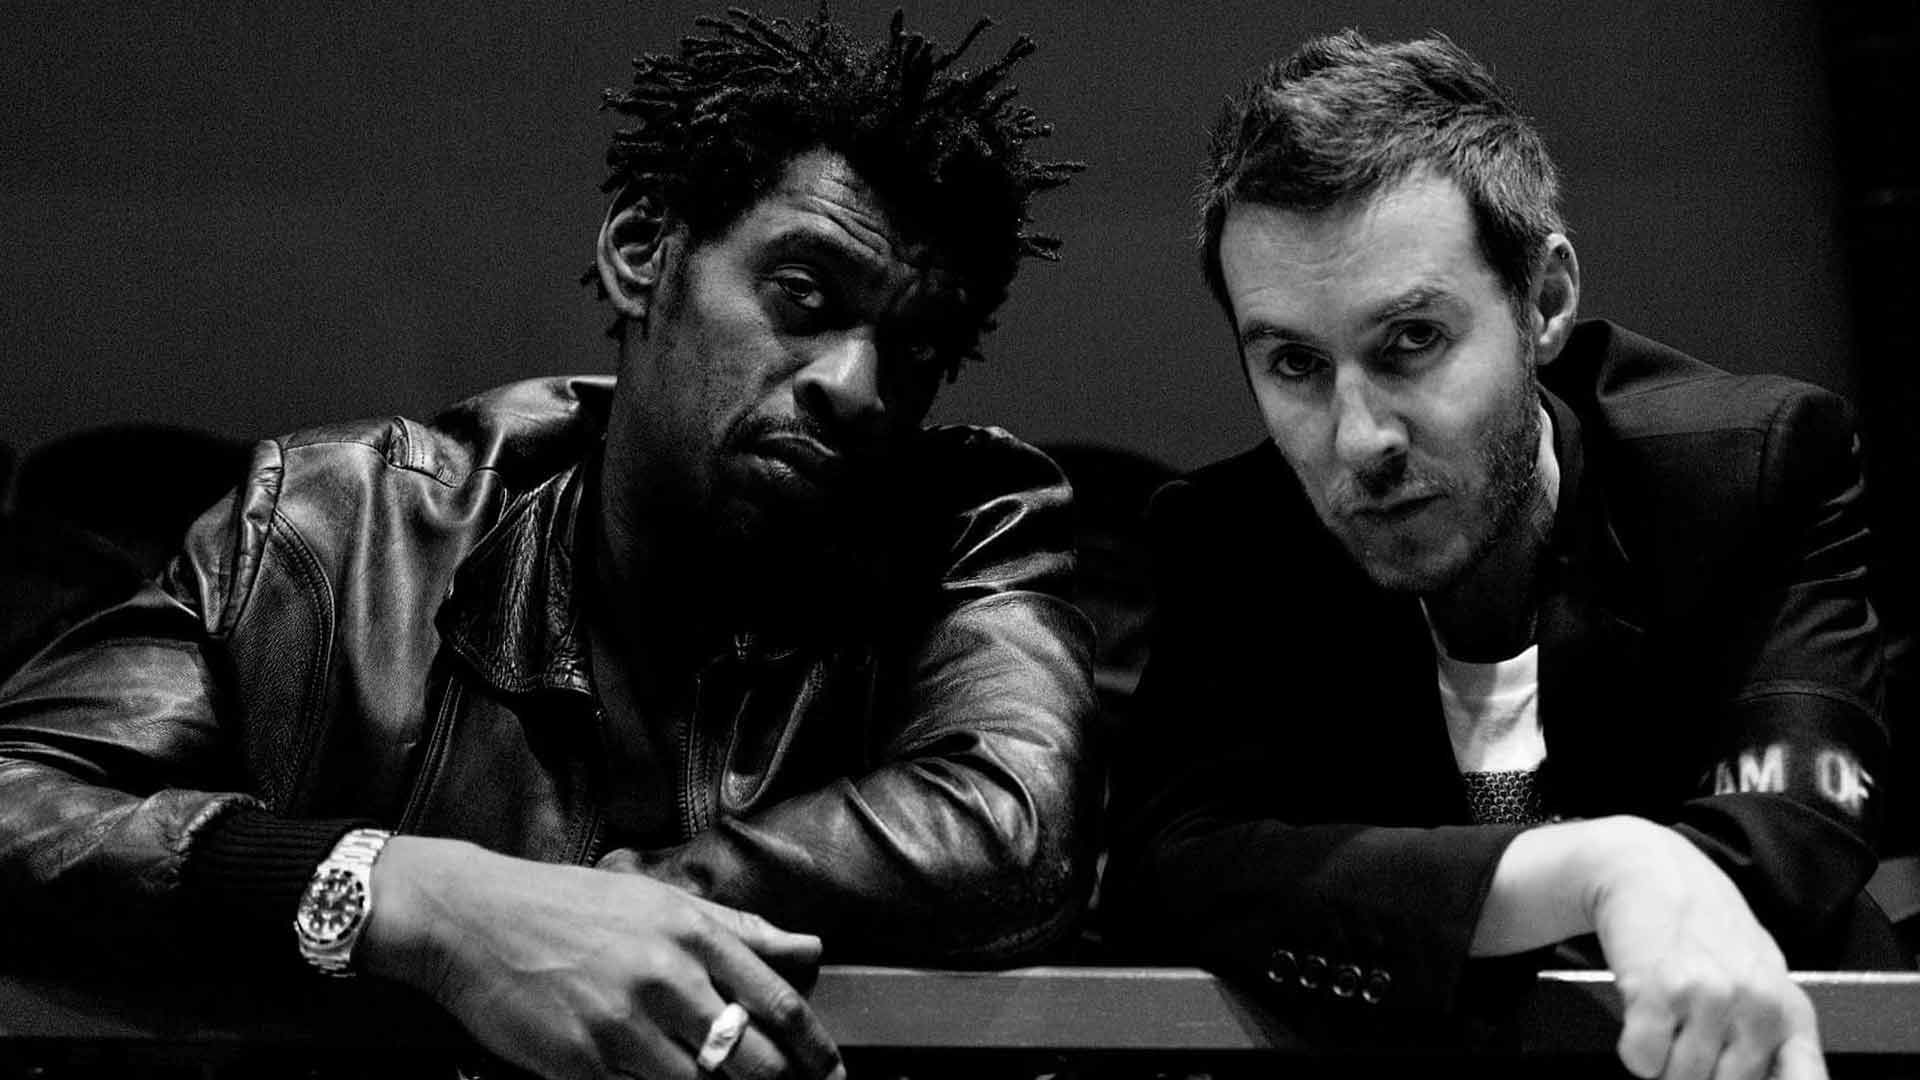 Massive Attack carbon emission plan for the music industry